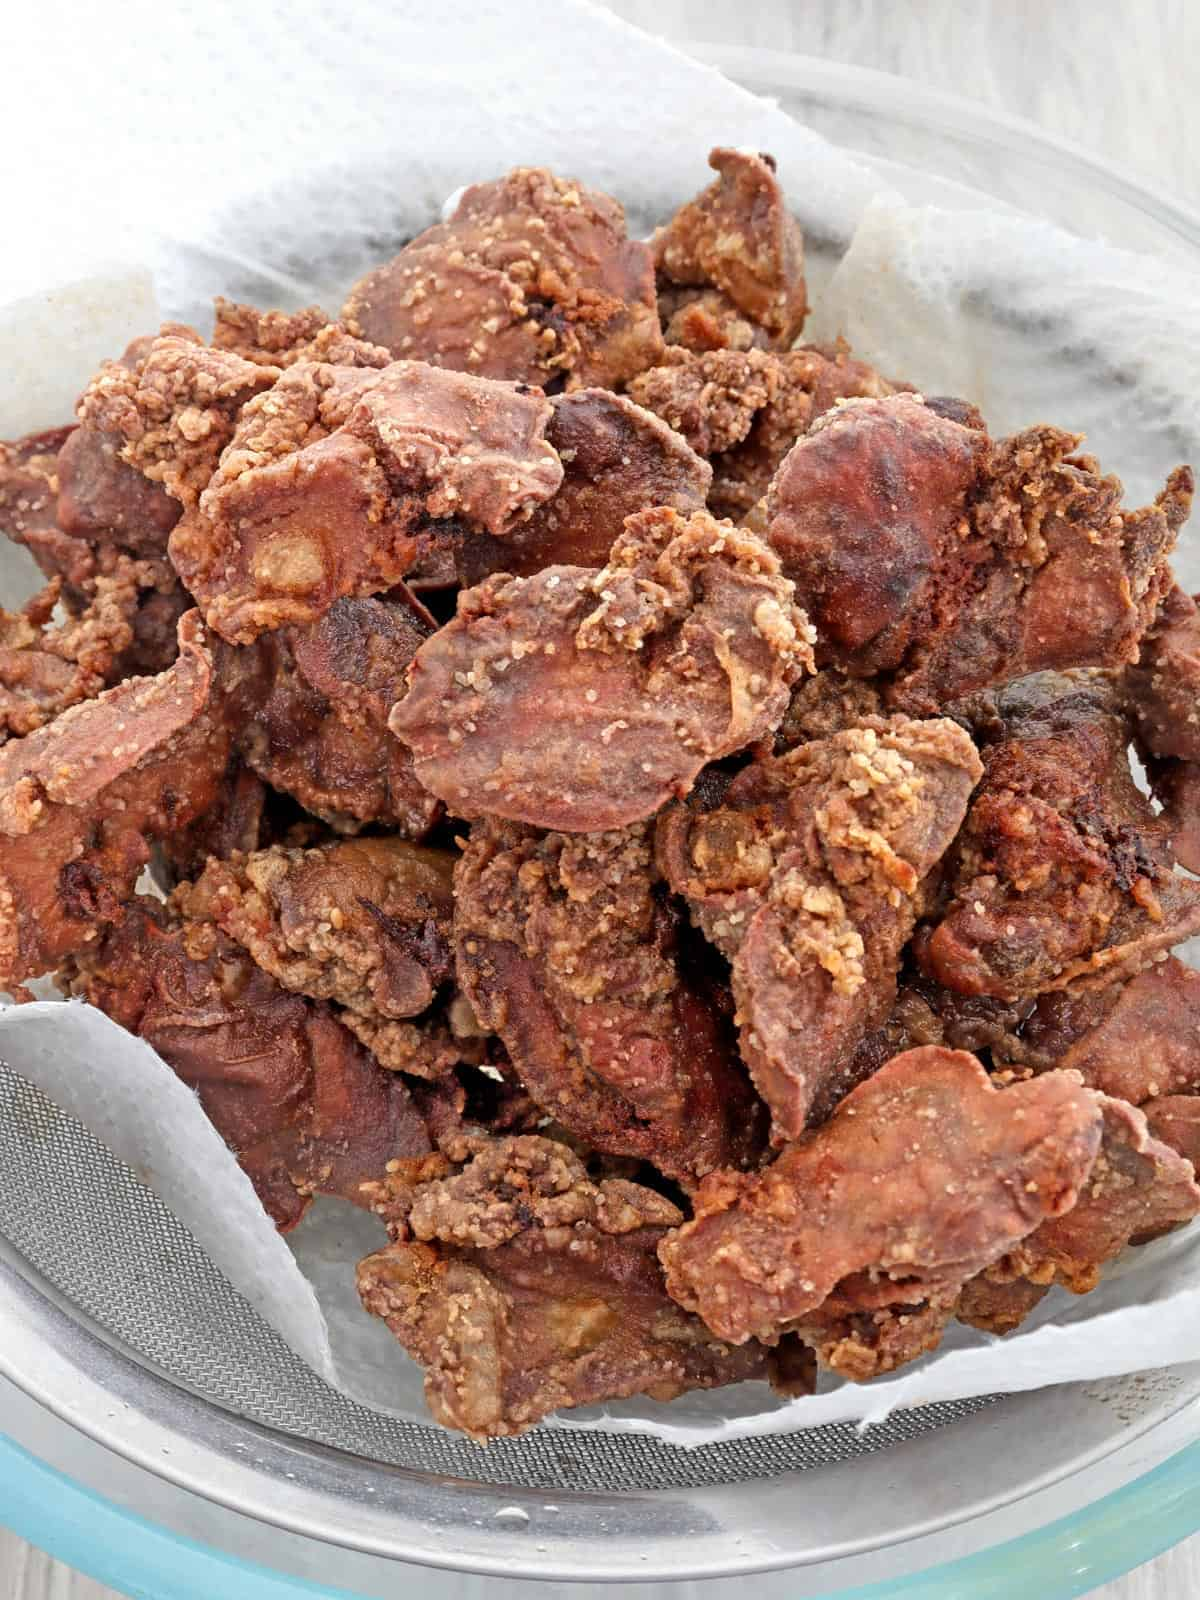 crispy fried chicken livers on a paper-lined plate